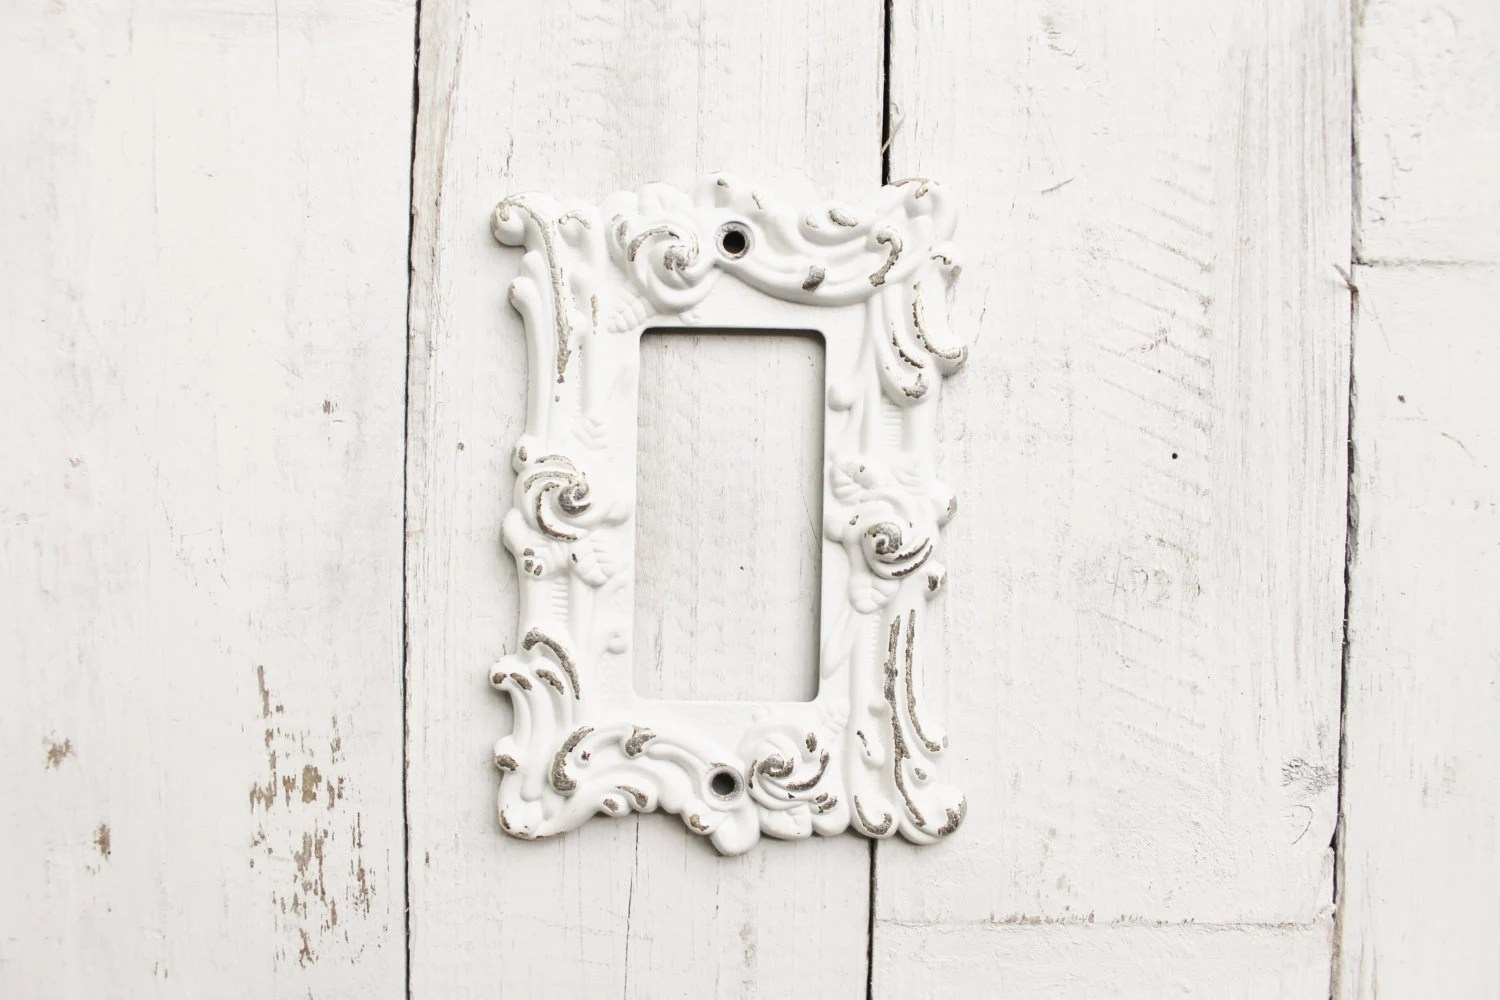 Metal Wall Decor Light Switch Cover In Shabby White Gfi Rocker